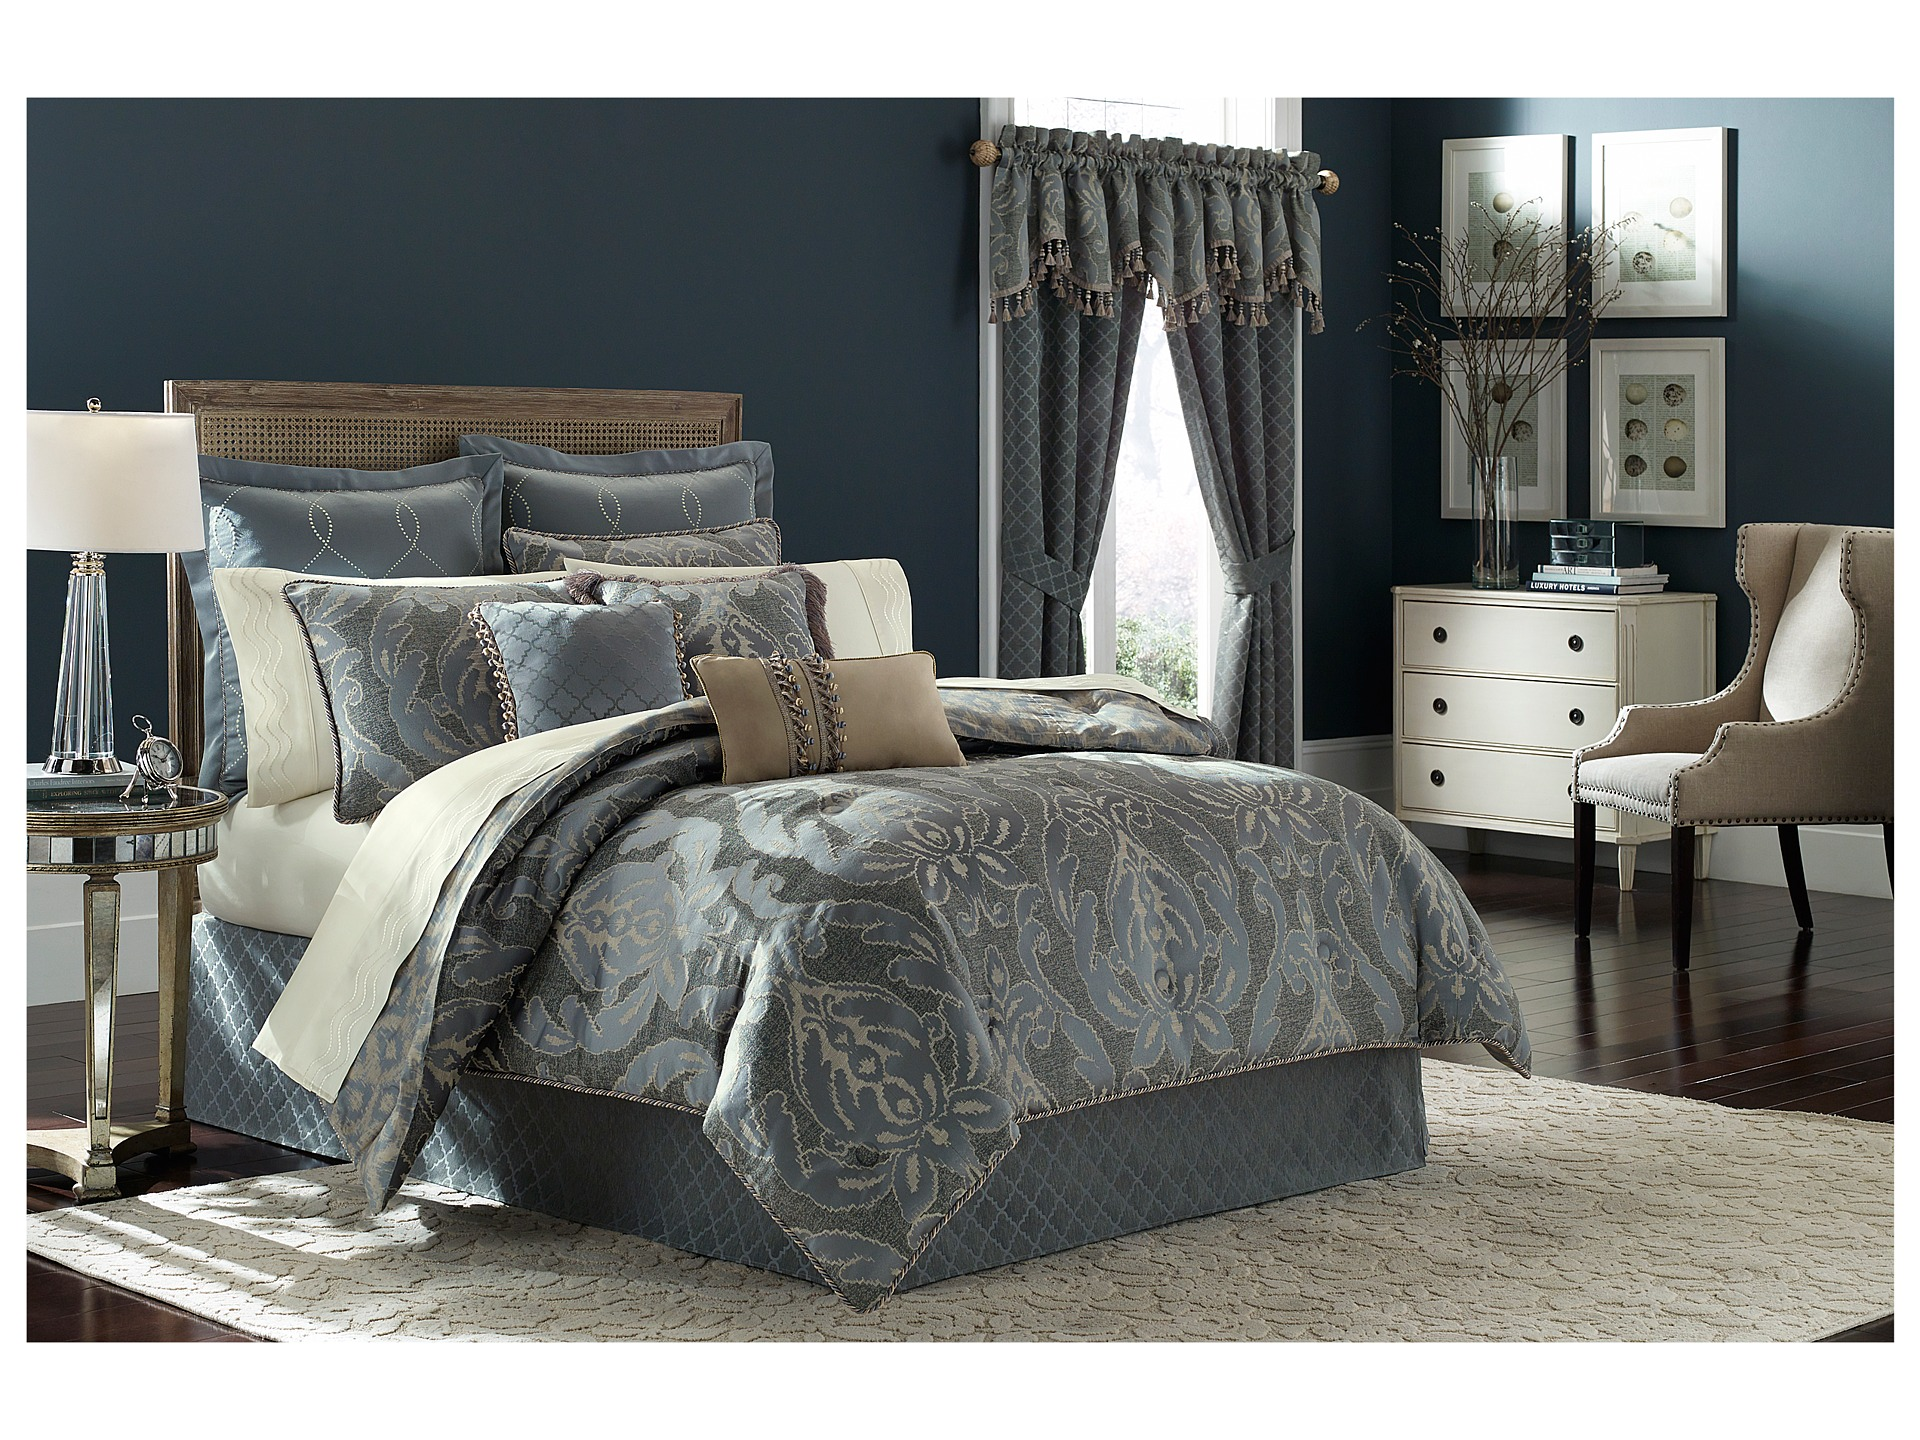 croscill chantal king comforter set shipped free at zappos. Black Bedroom Furniture Sets. Home Design Ideas